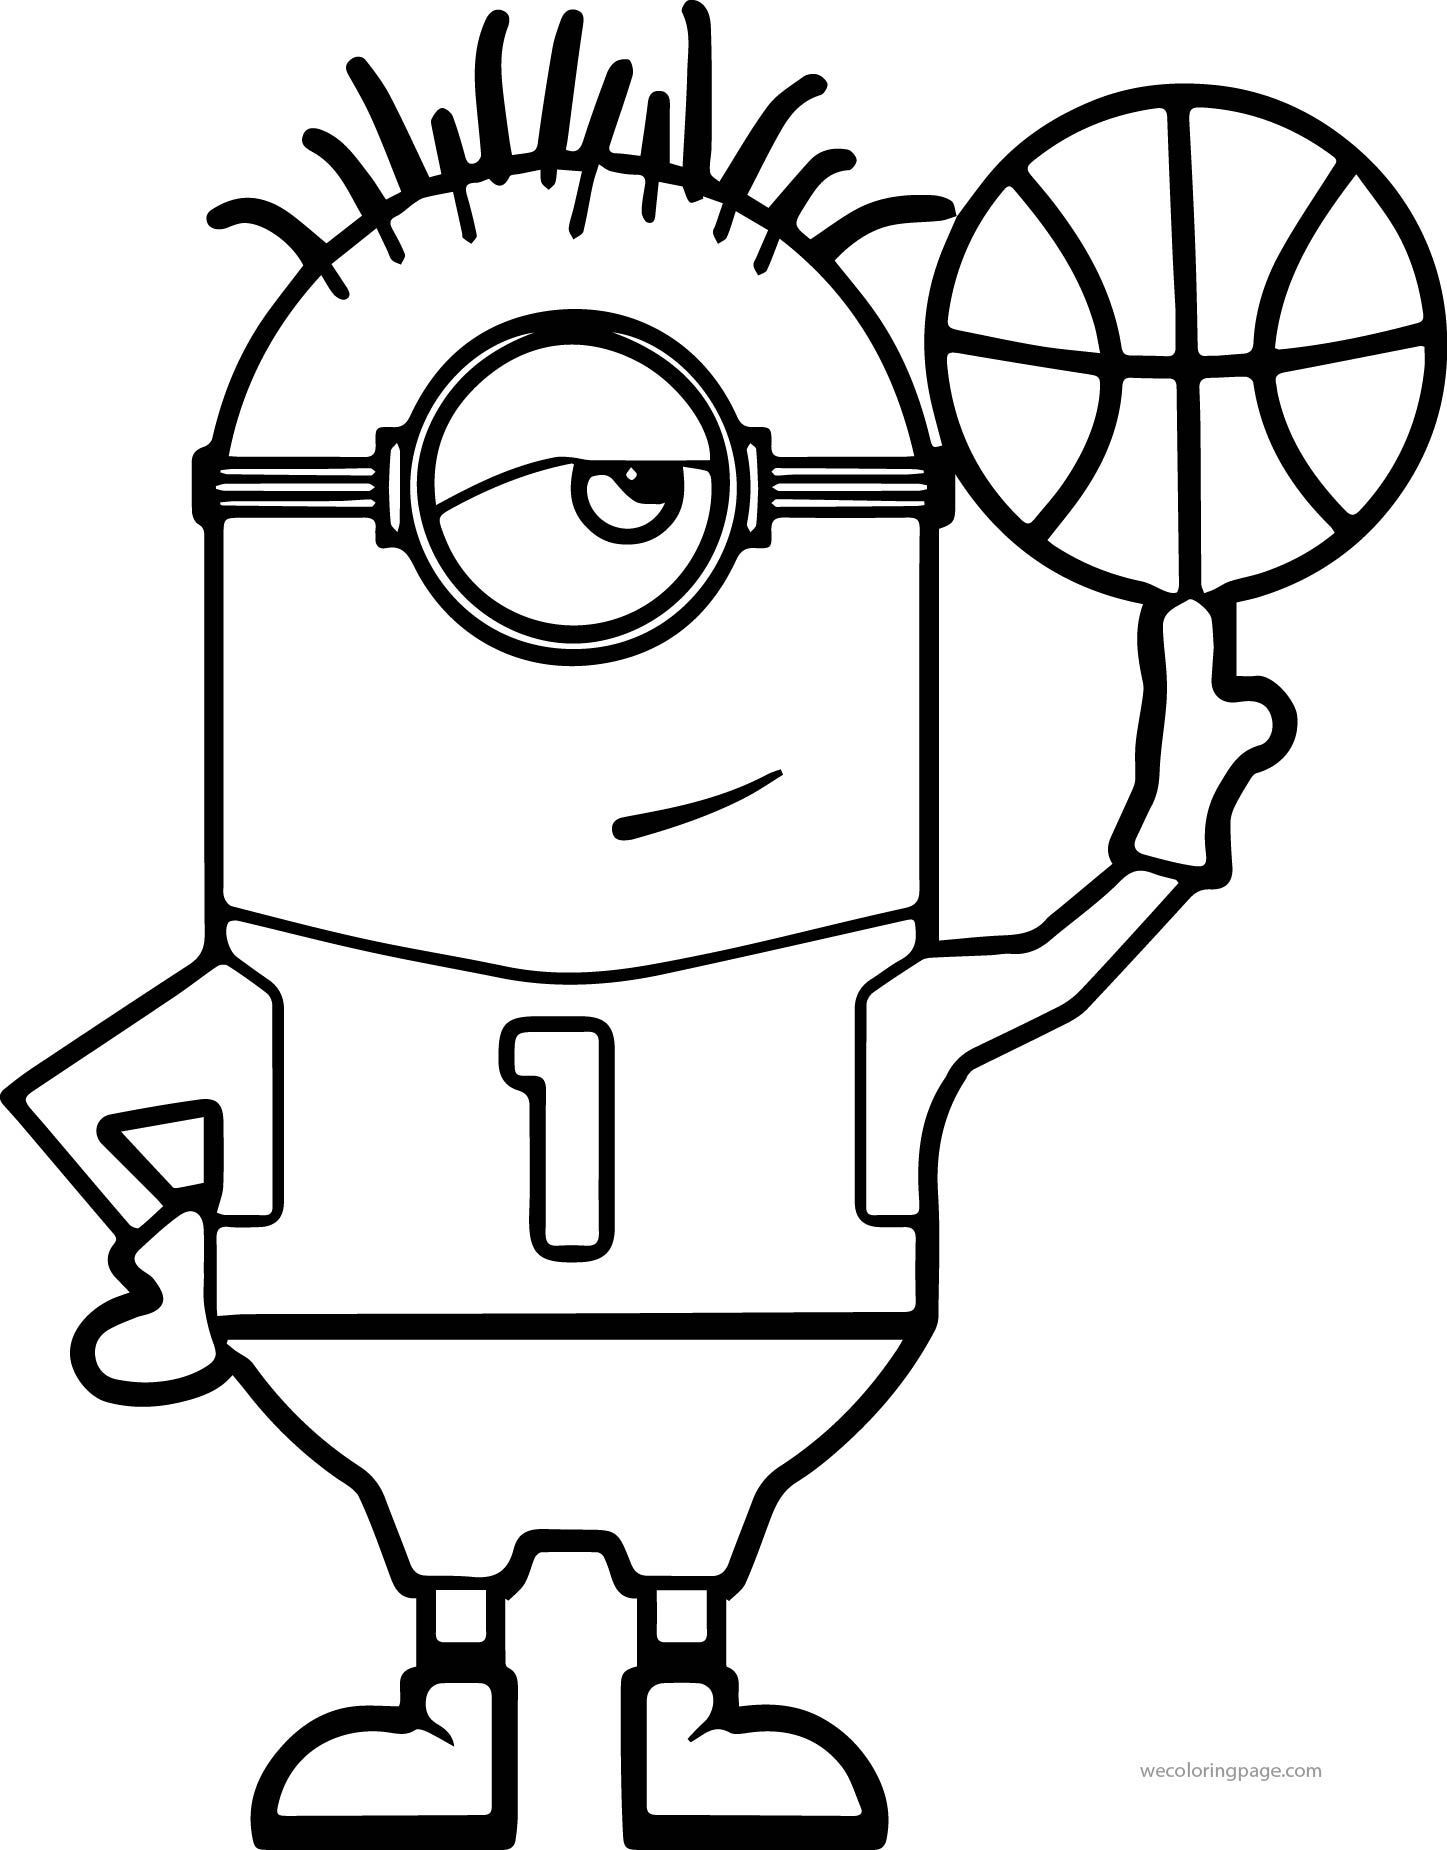 Minion Basketball Coloring Pages In 2020 Omaľovanky